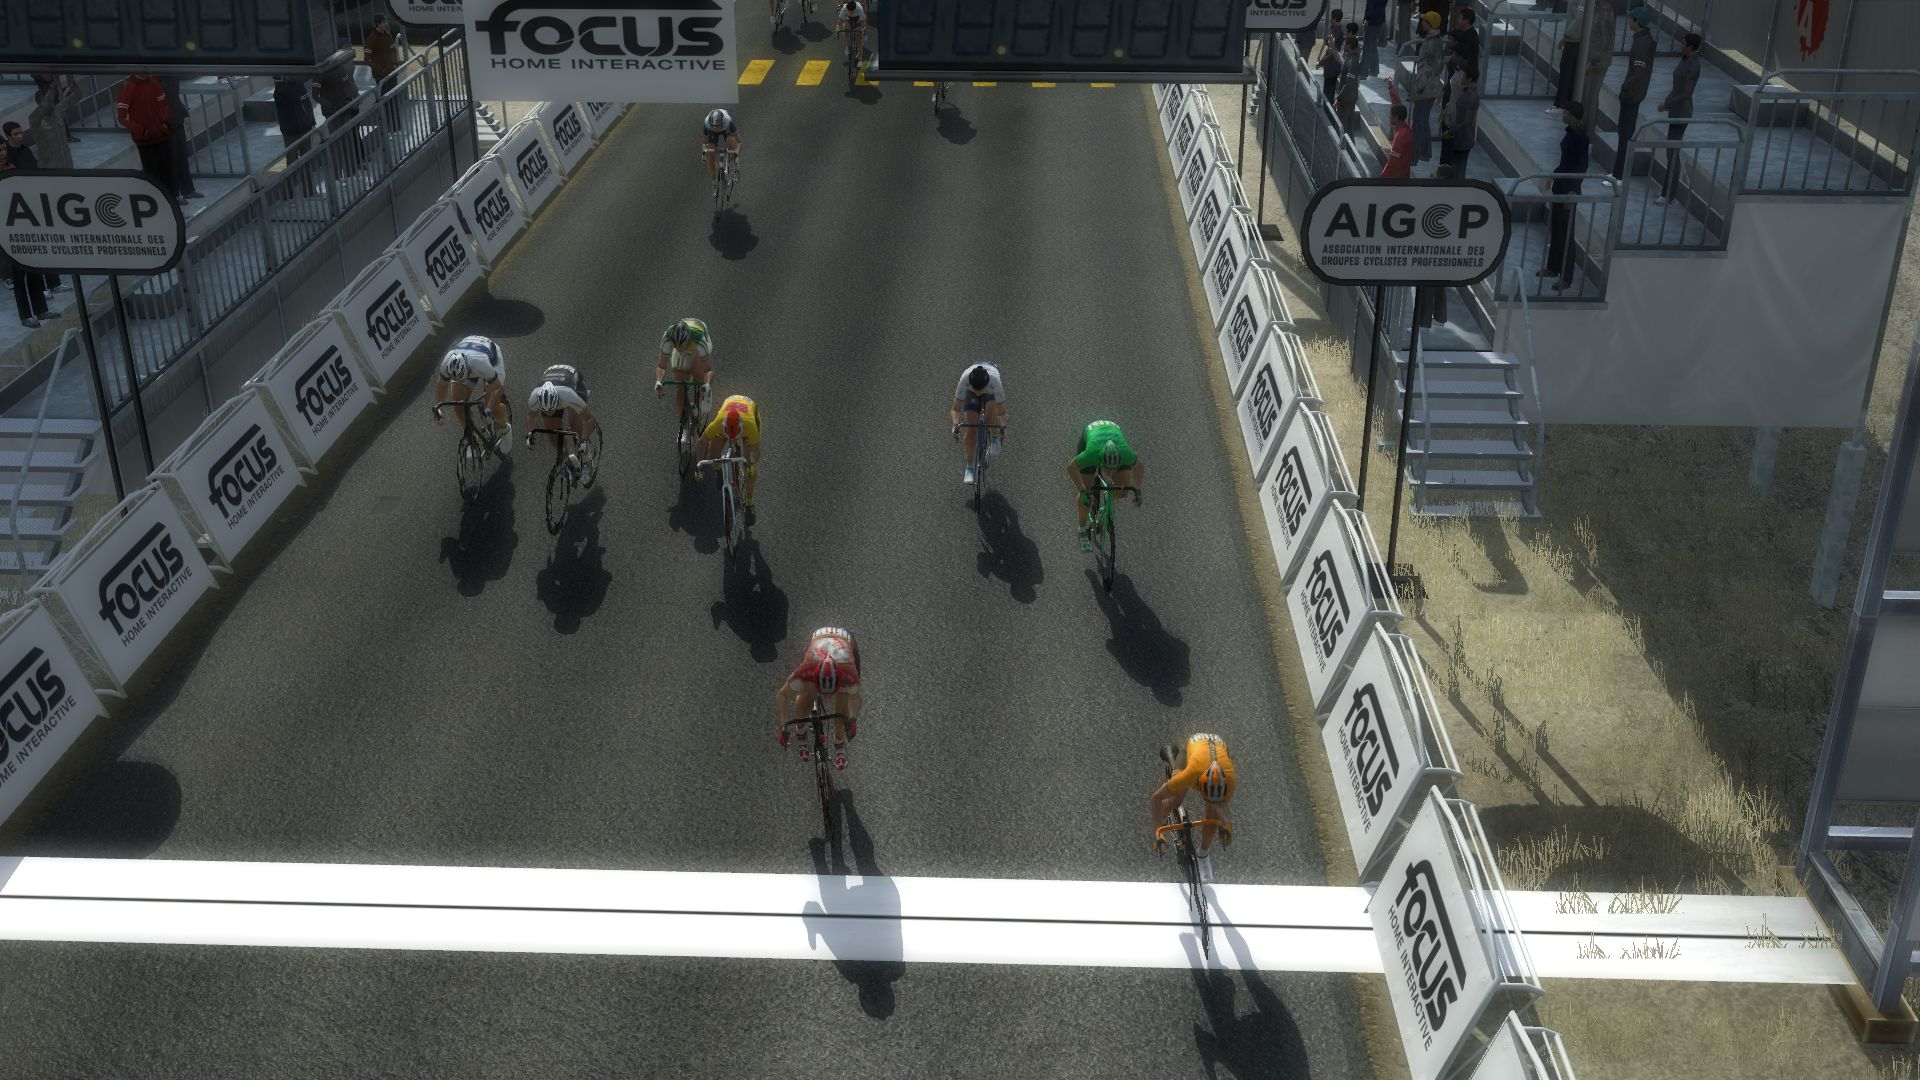 pcmdaily.com/images/mg/2019/Races/C2HC/Eritrea/TOES2%2020.jpg